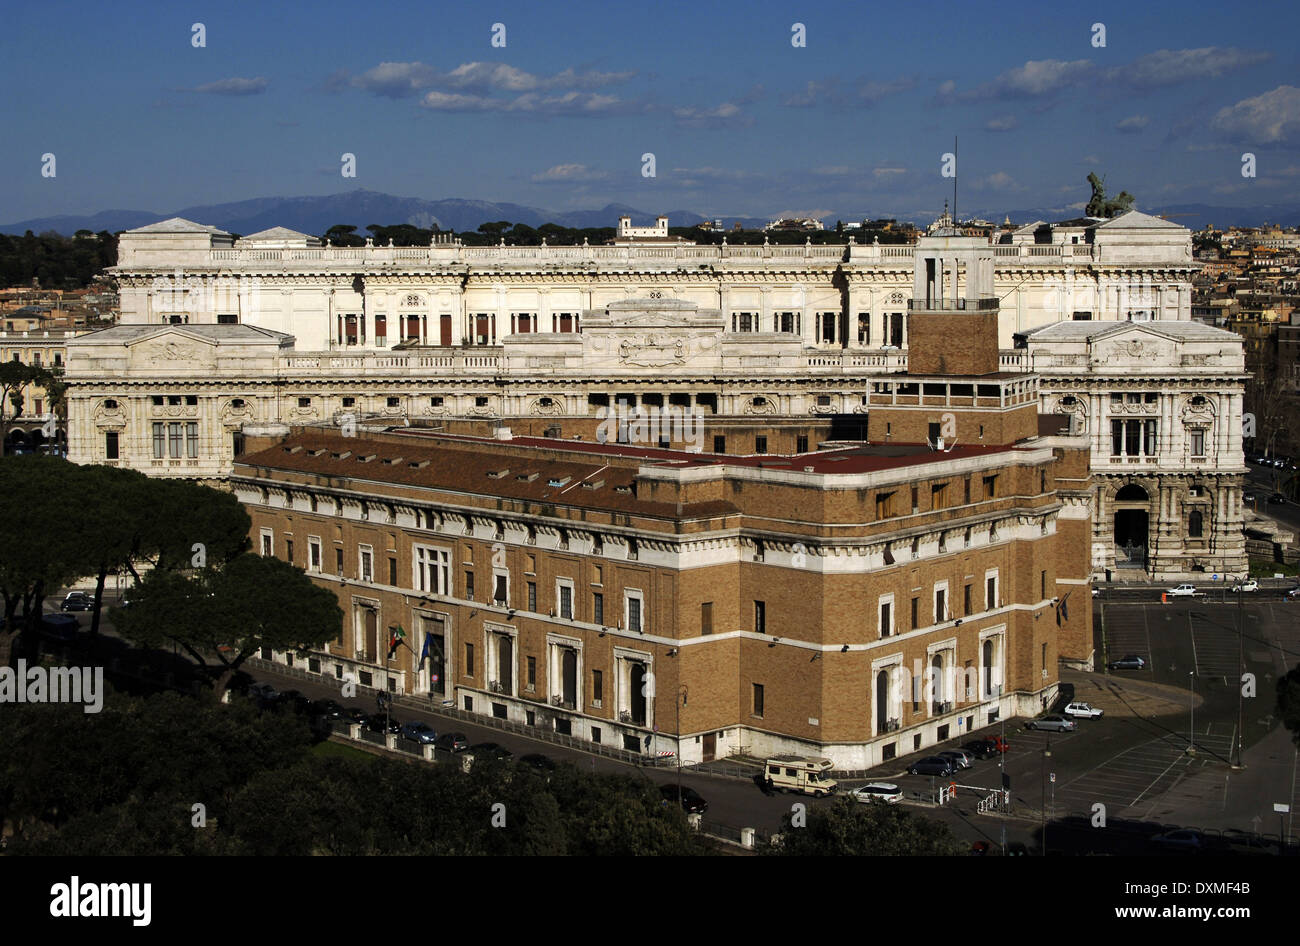 Italy. Rome. The Palace of Justice. Designed by Guglielmo Calderini and built between 1888 and 1910. - Stock Image